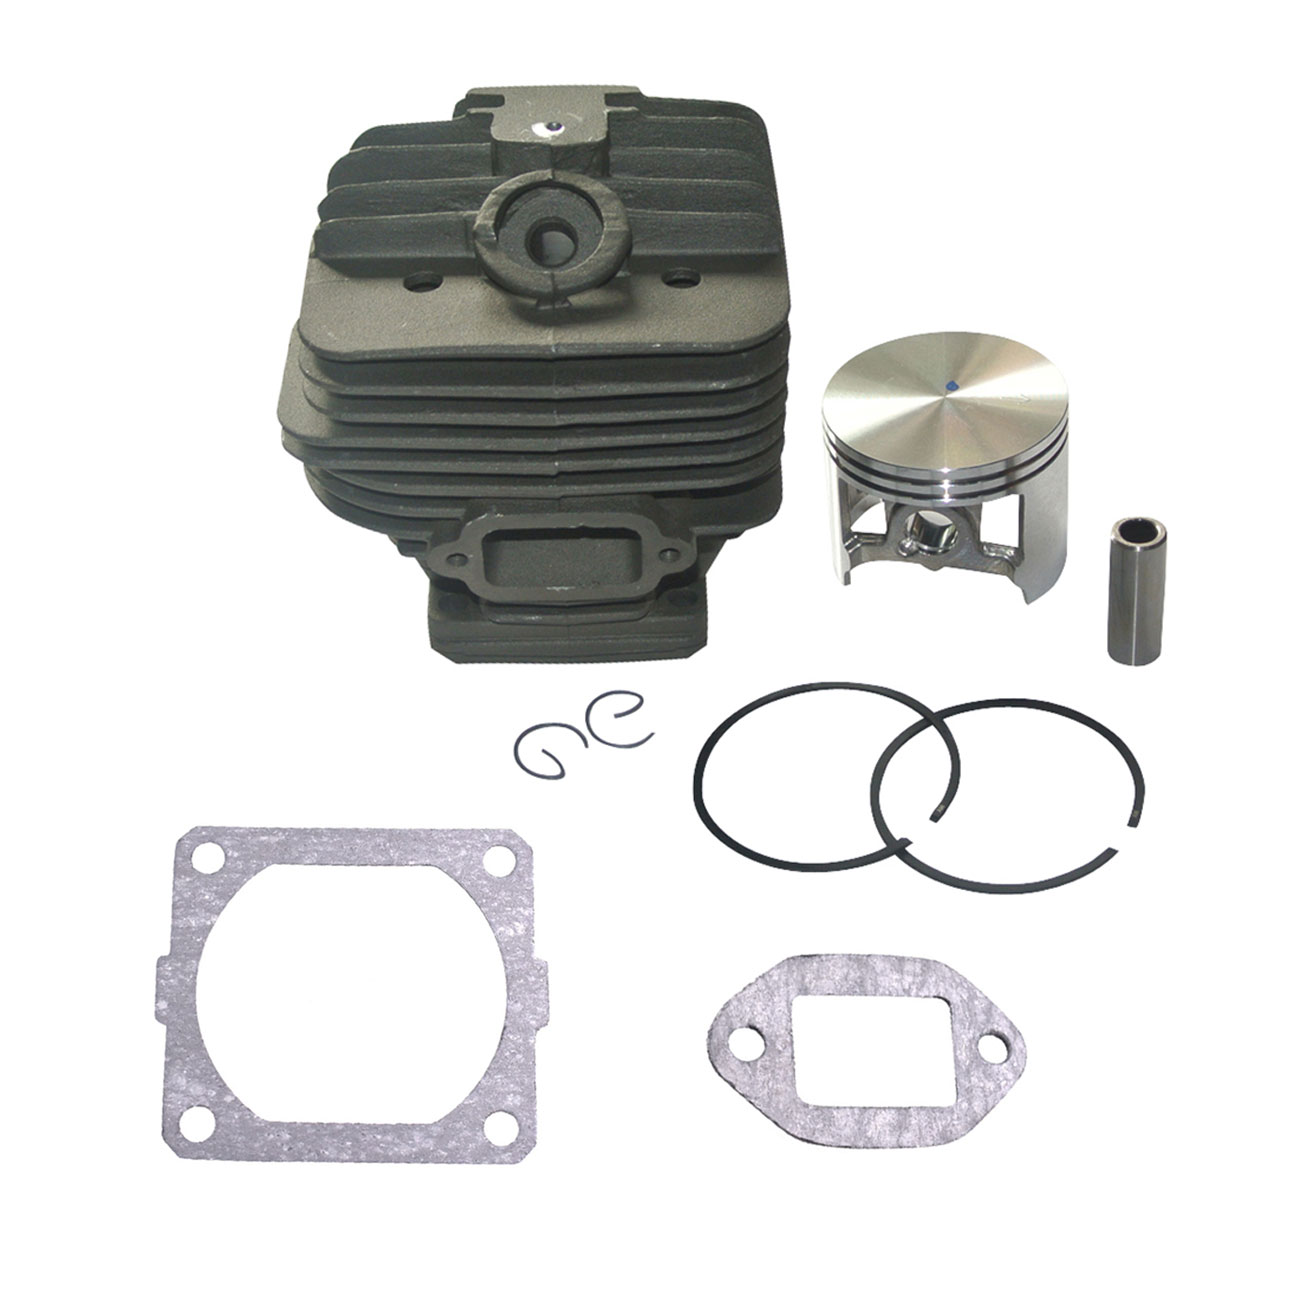 54mm Cylinder Piston Ring Kit For Stihl Chainsaw 066 MS660